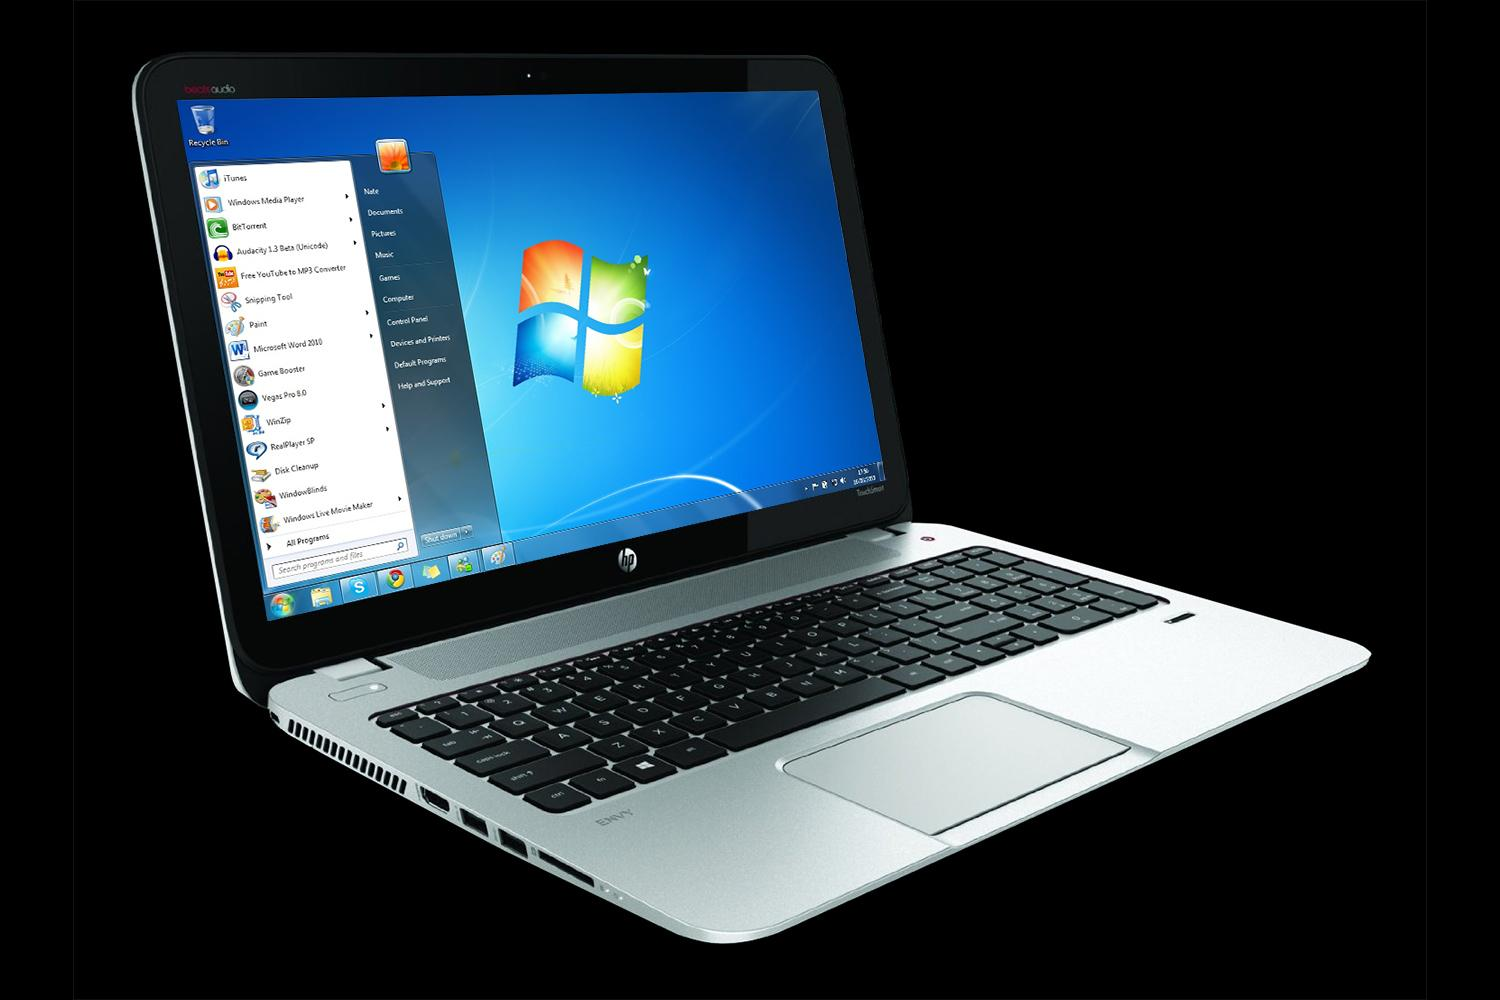 Windows 7 use surges, while Windows 8 and 8.1 popularity falls